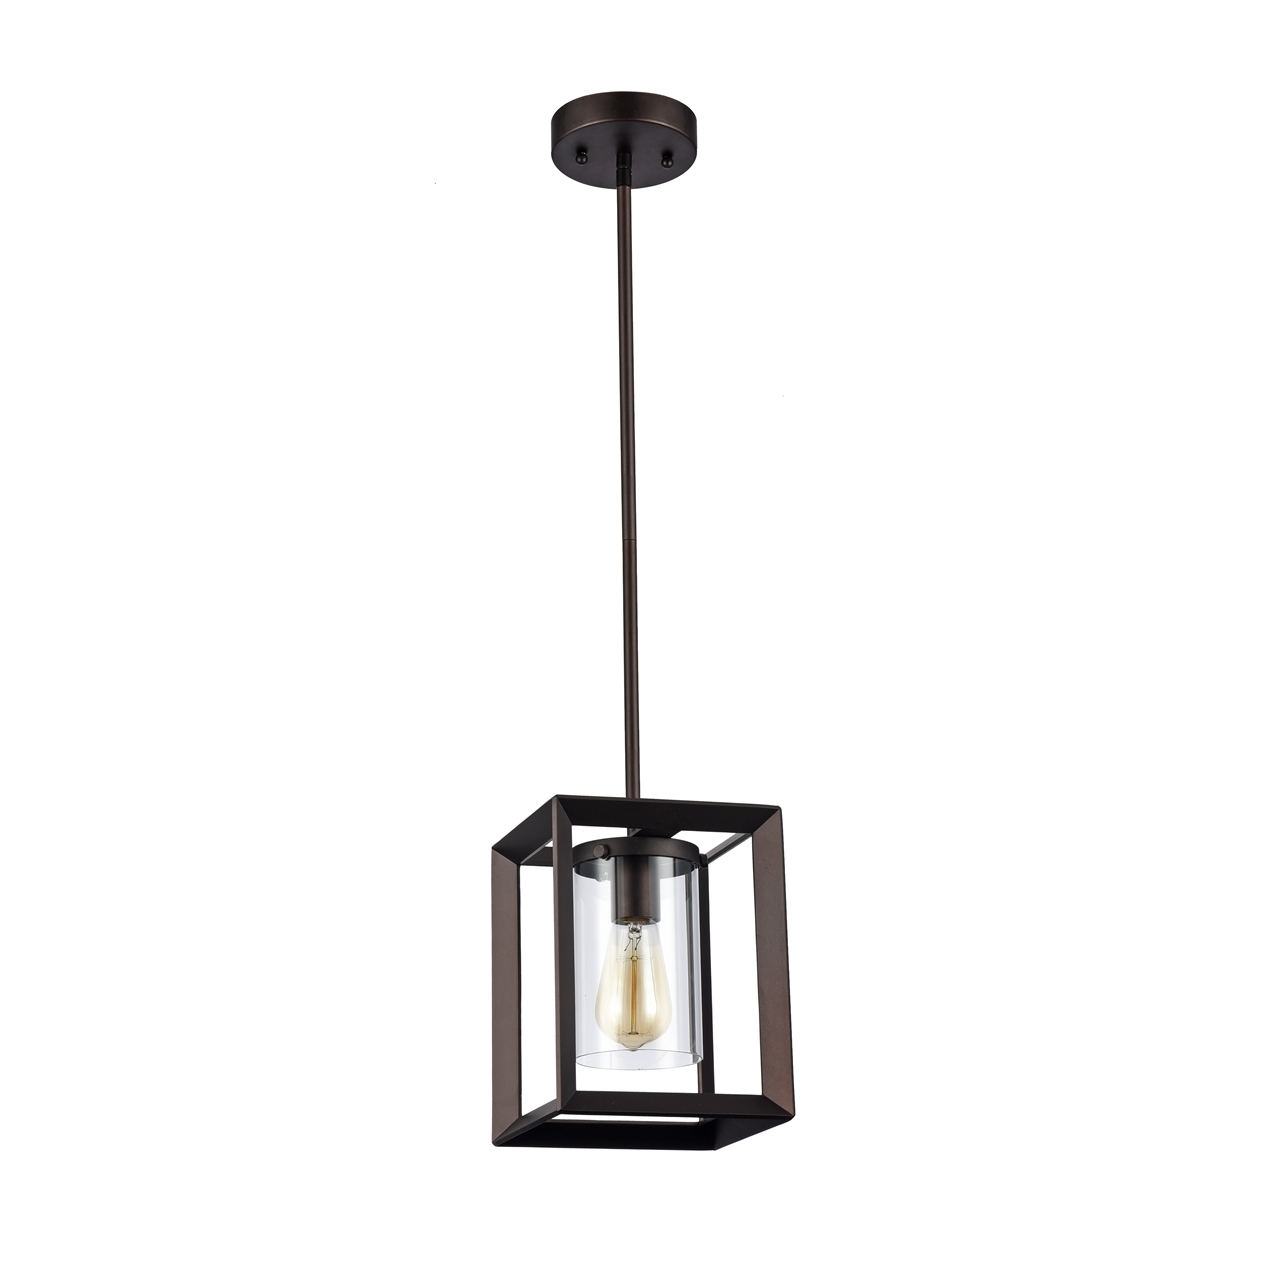 CHLOE Lighting, Inc Lighting Wholesale, Lighting